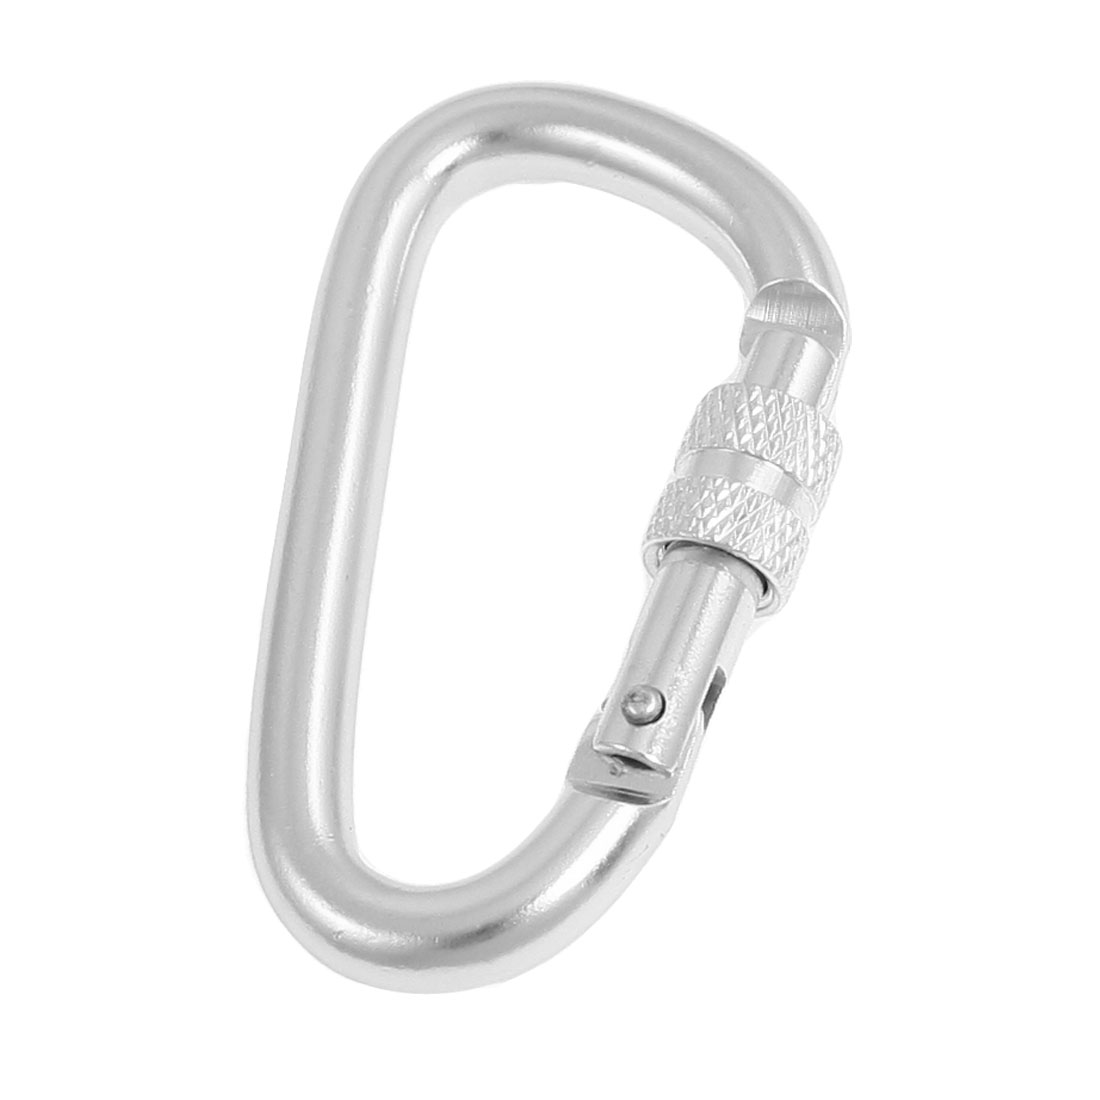 D Shaped Spring Loaded Gate Silver Tone Aluminum Alloy Lockable Carabiner